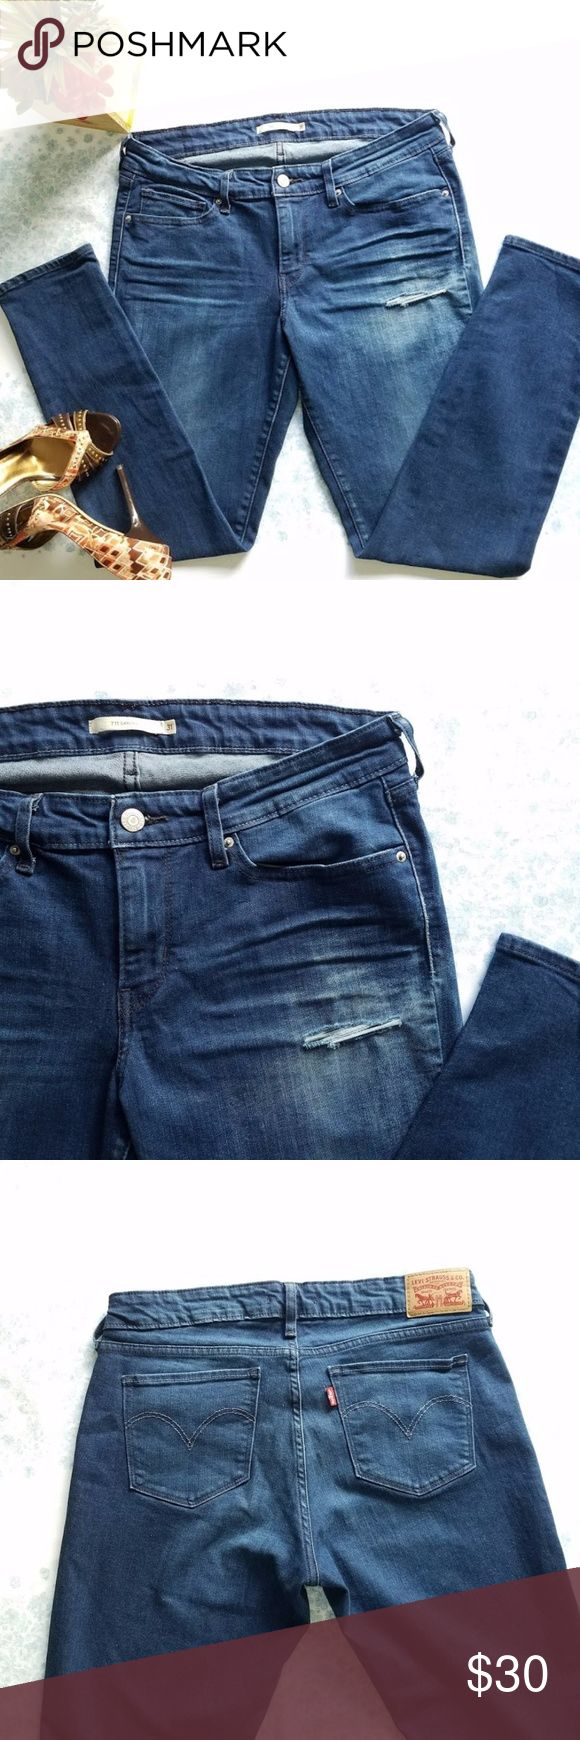 🚨ON SALE🚨Levi Strauss & Co 711 Skinny Jeans Wonderful medium wash skinny jeans from Levi Strauss. Ankle length with a rip detail on one side.  Worn once, in perfect condition! Levi's Jeans Skinny